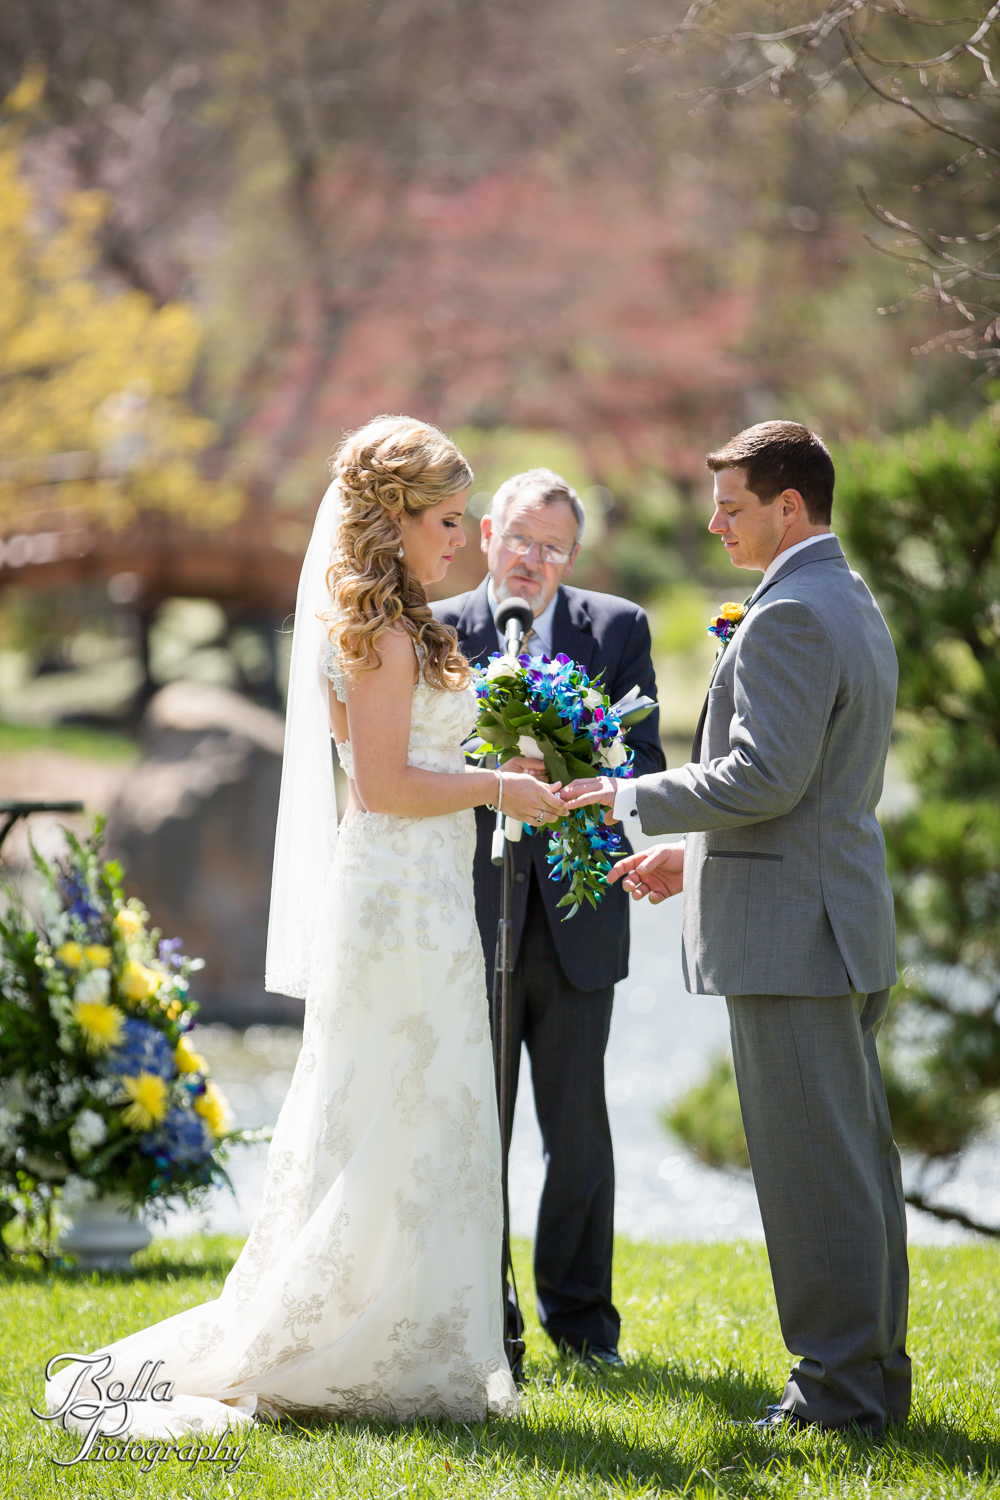 Bolla_Photography_St_Louis_wedding_photographer_Morgando_Blues_hockey_Botanical_Gardens_spring-0207.jpg